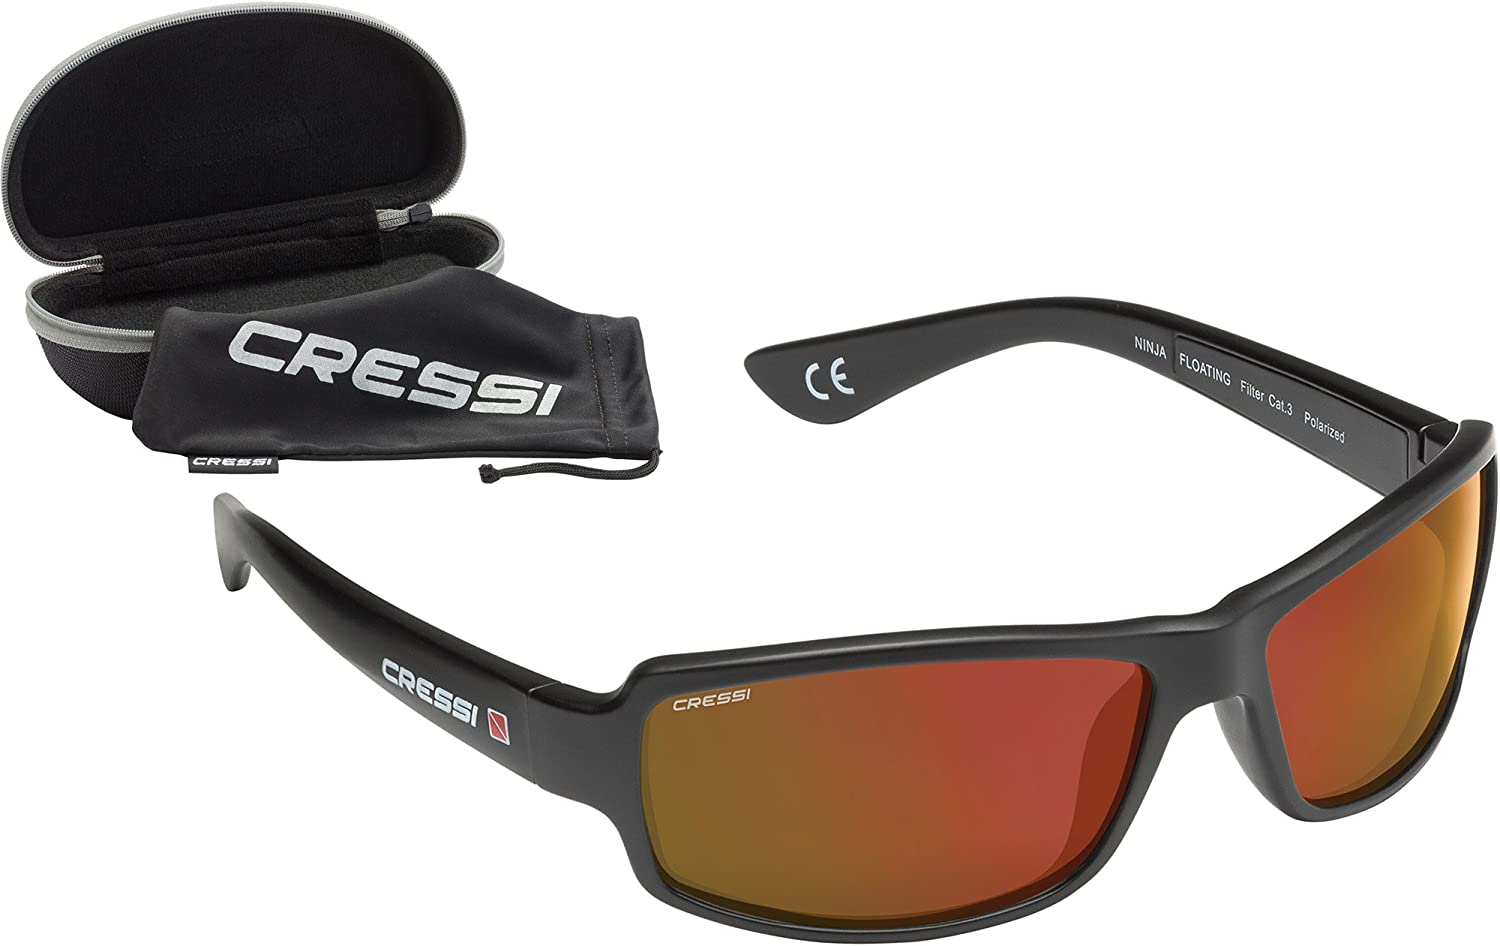 Cressi Ninja, Sunglasses Sport Mens, Polarized Lenses, with Hard Case Italian Quality Since 1946 Includes Floating Versions DB100001